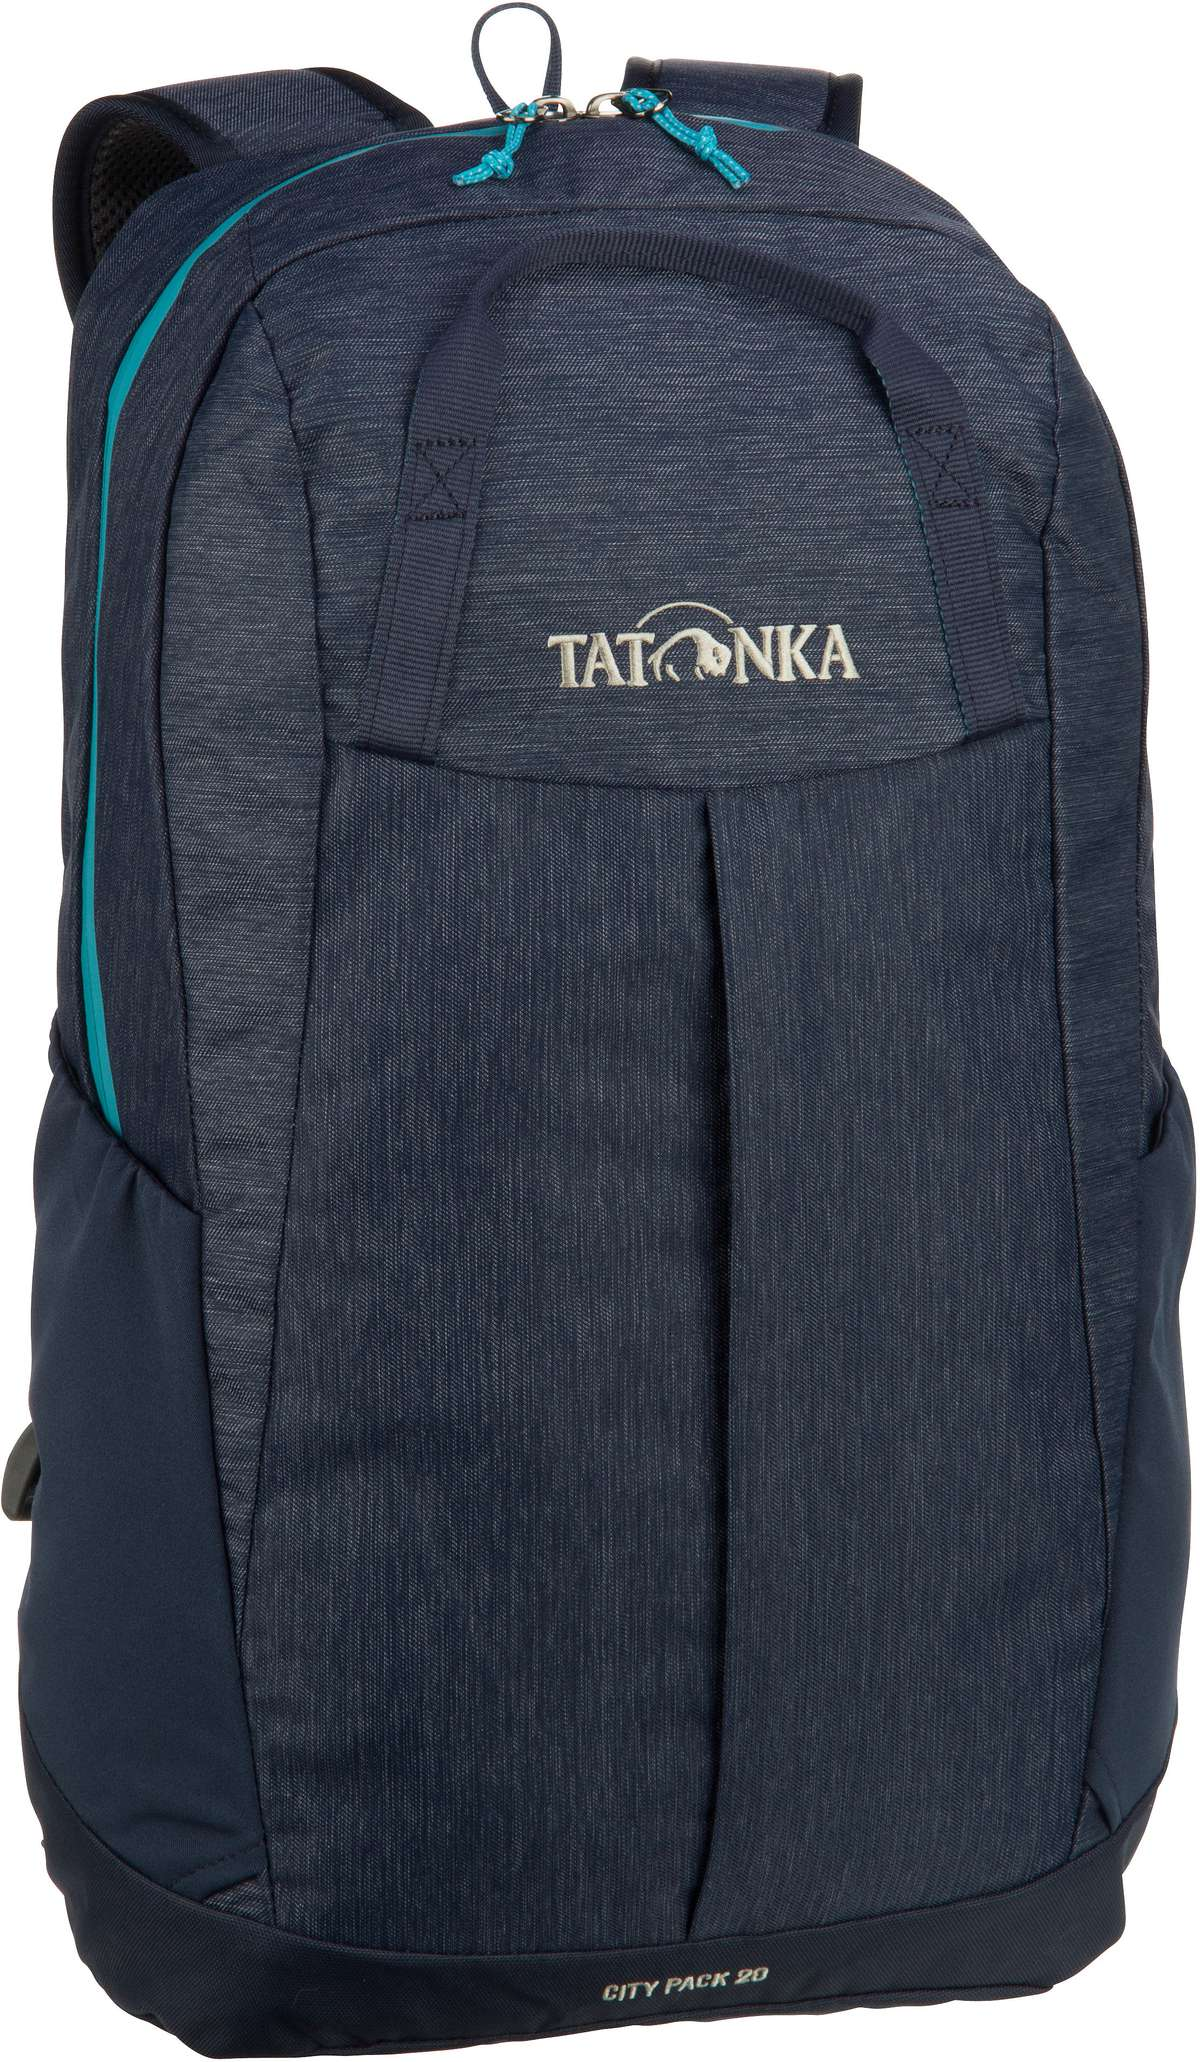 Rucksack / Daypack City Pack 20 Navy (20 Liter)